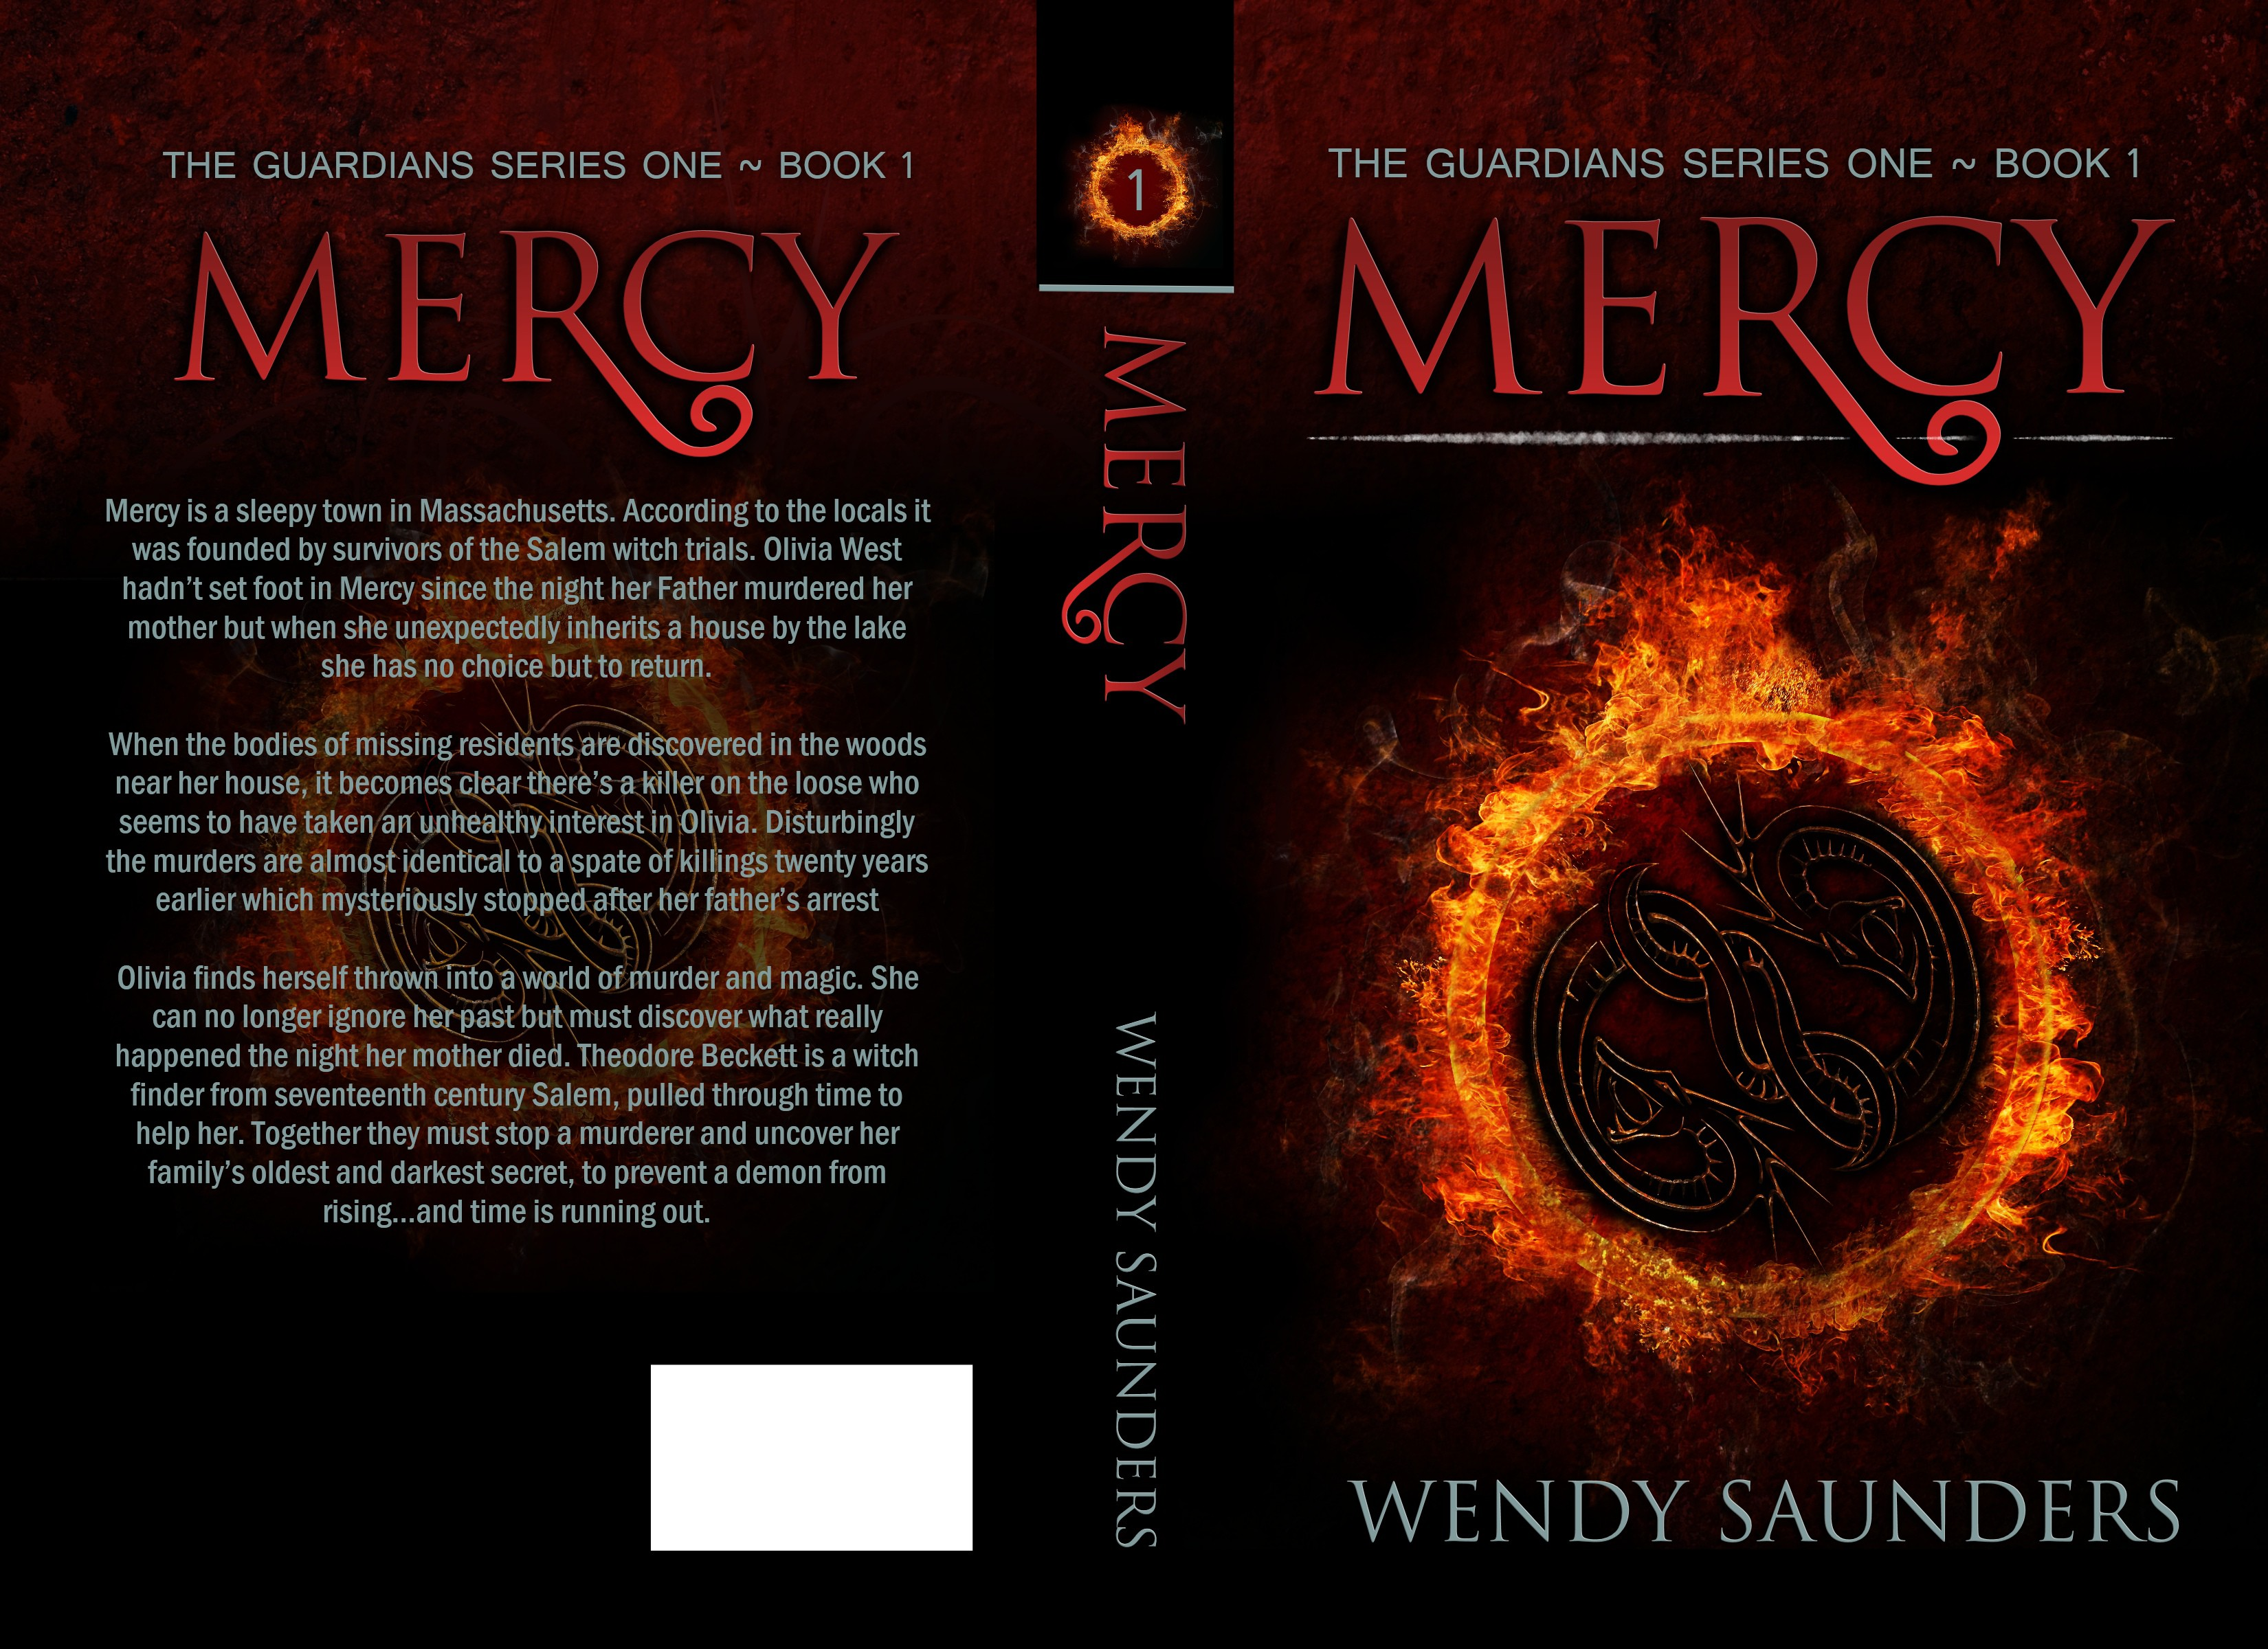 Create an eyecatching best seller cover for Book 1 of a Supernatural/suspense/mystery/romance series